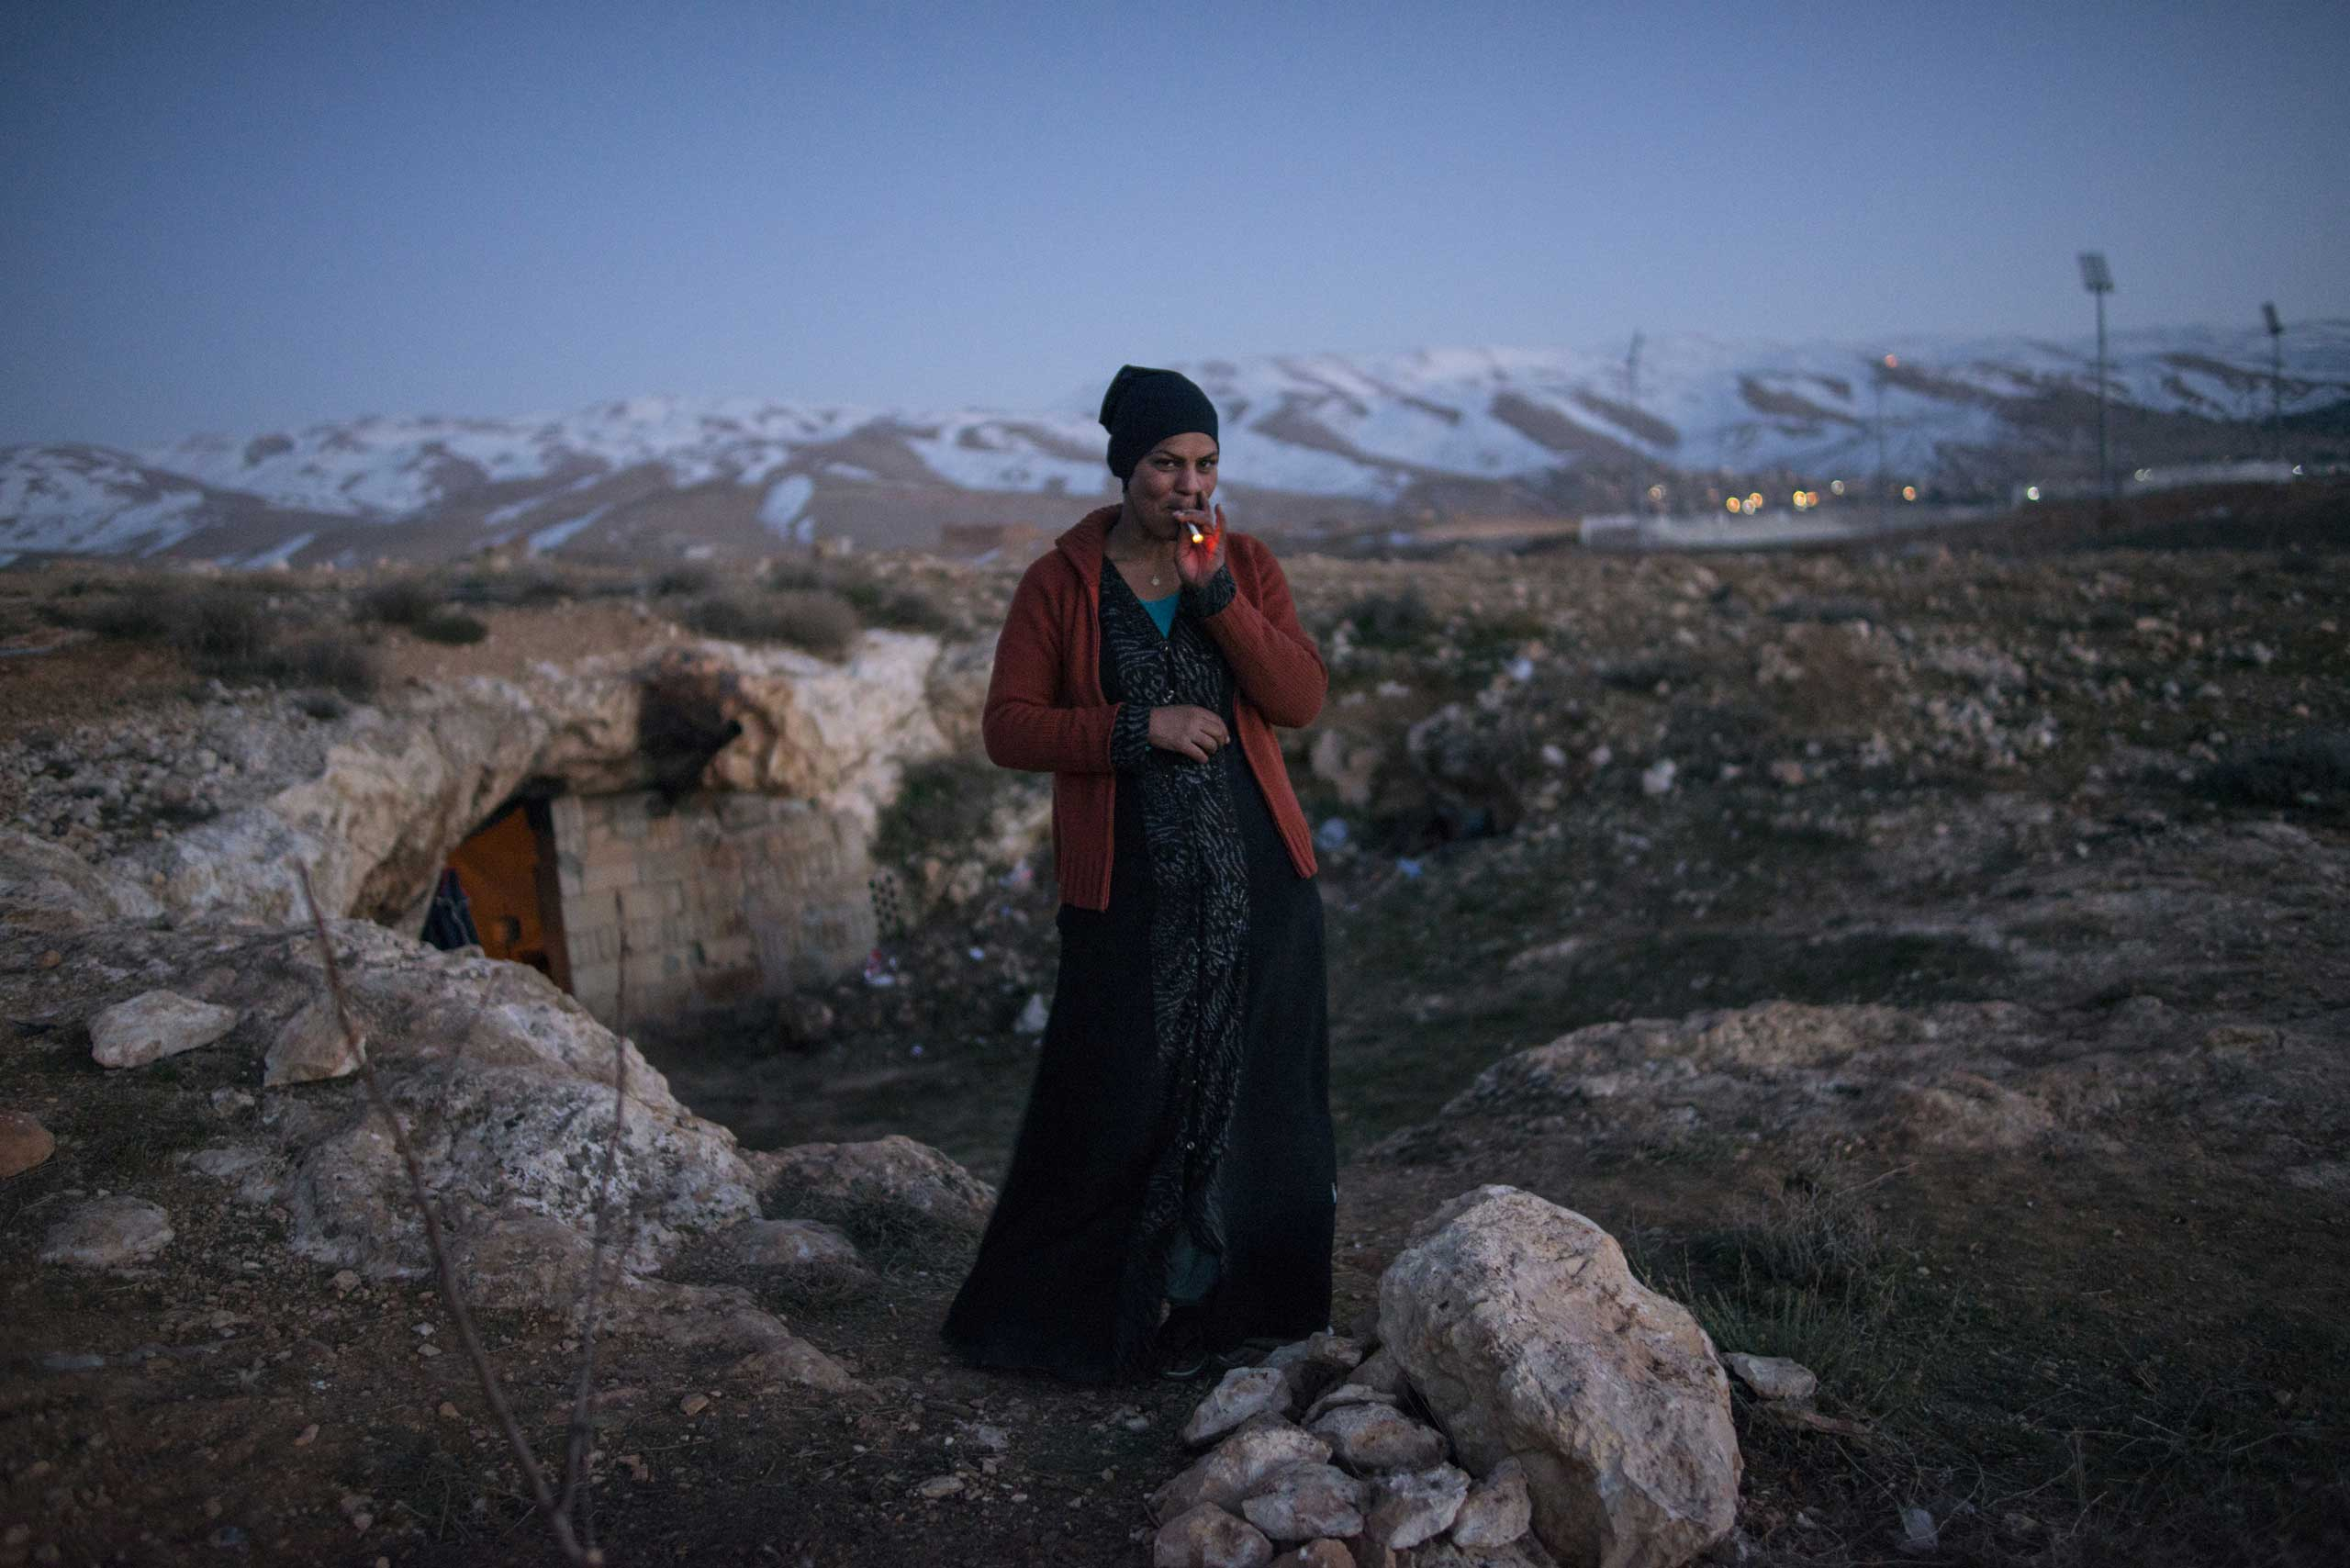 Columbia Journalism Review: A look at Lynsey Addario's biography, It's What I DoDalal, 21, a Syrian refugee from the Damascus suburbs stands in front of the cave she and her family have been staying in since crossing into Lebanon roughly a week prior,  in Baalbak, Lebanon, Jan. 22, 2013.